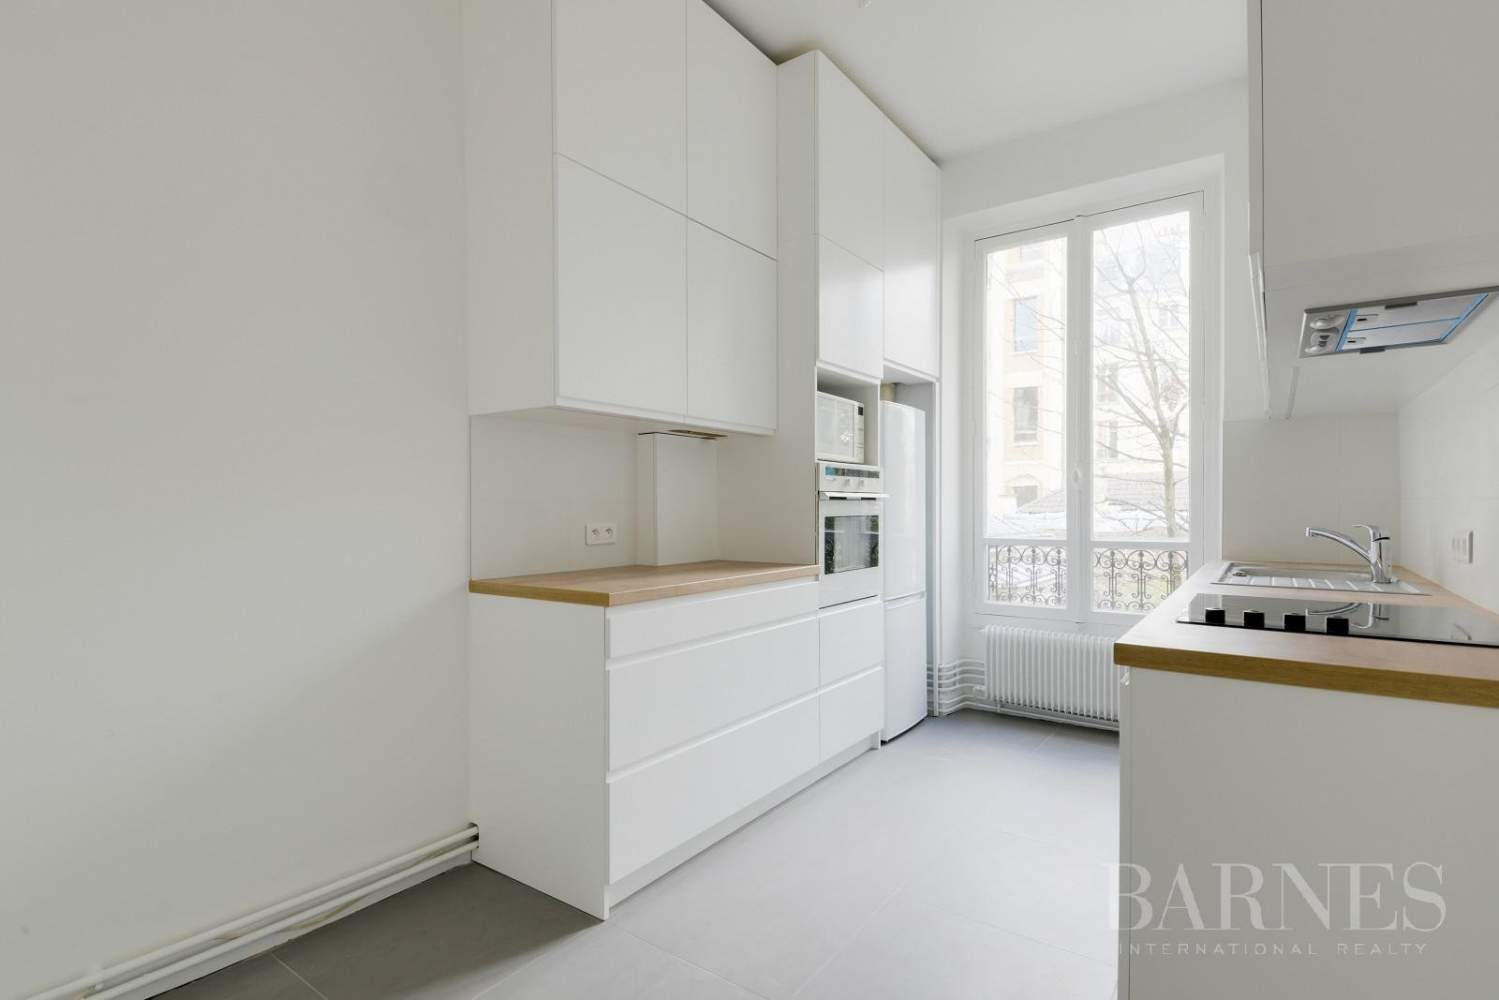 APPARTEMENT NEUILLY SABLONS 4 CHAMBRES 145M² picture 11